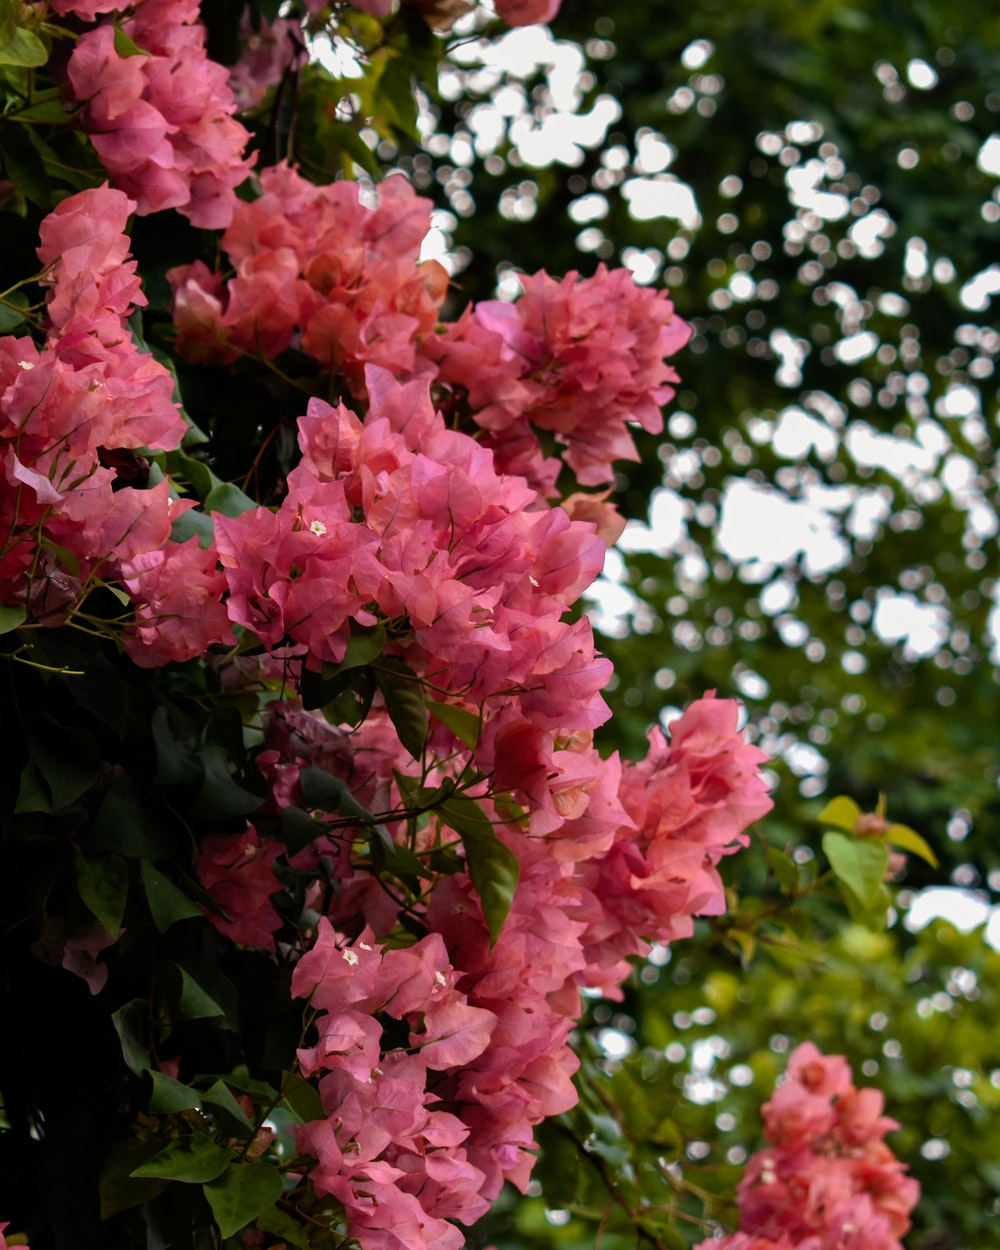 pink flowers with green leaves during day